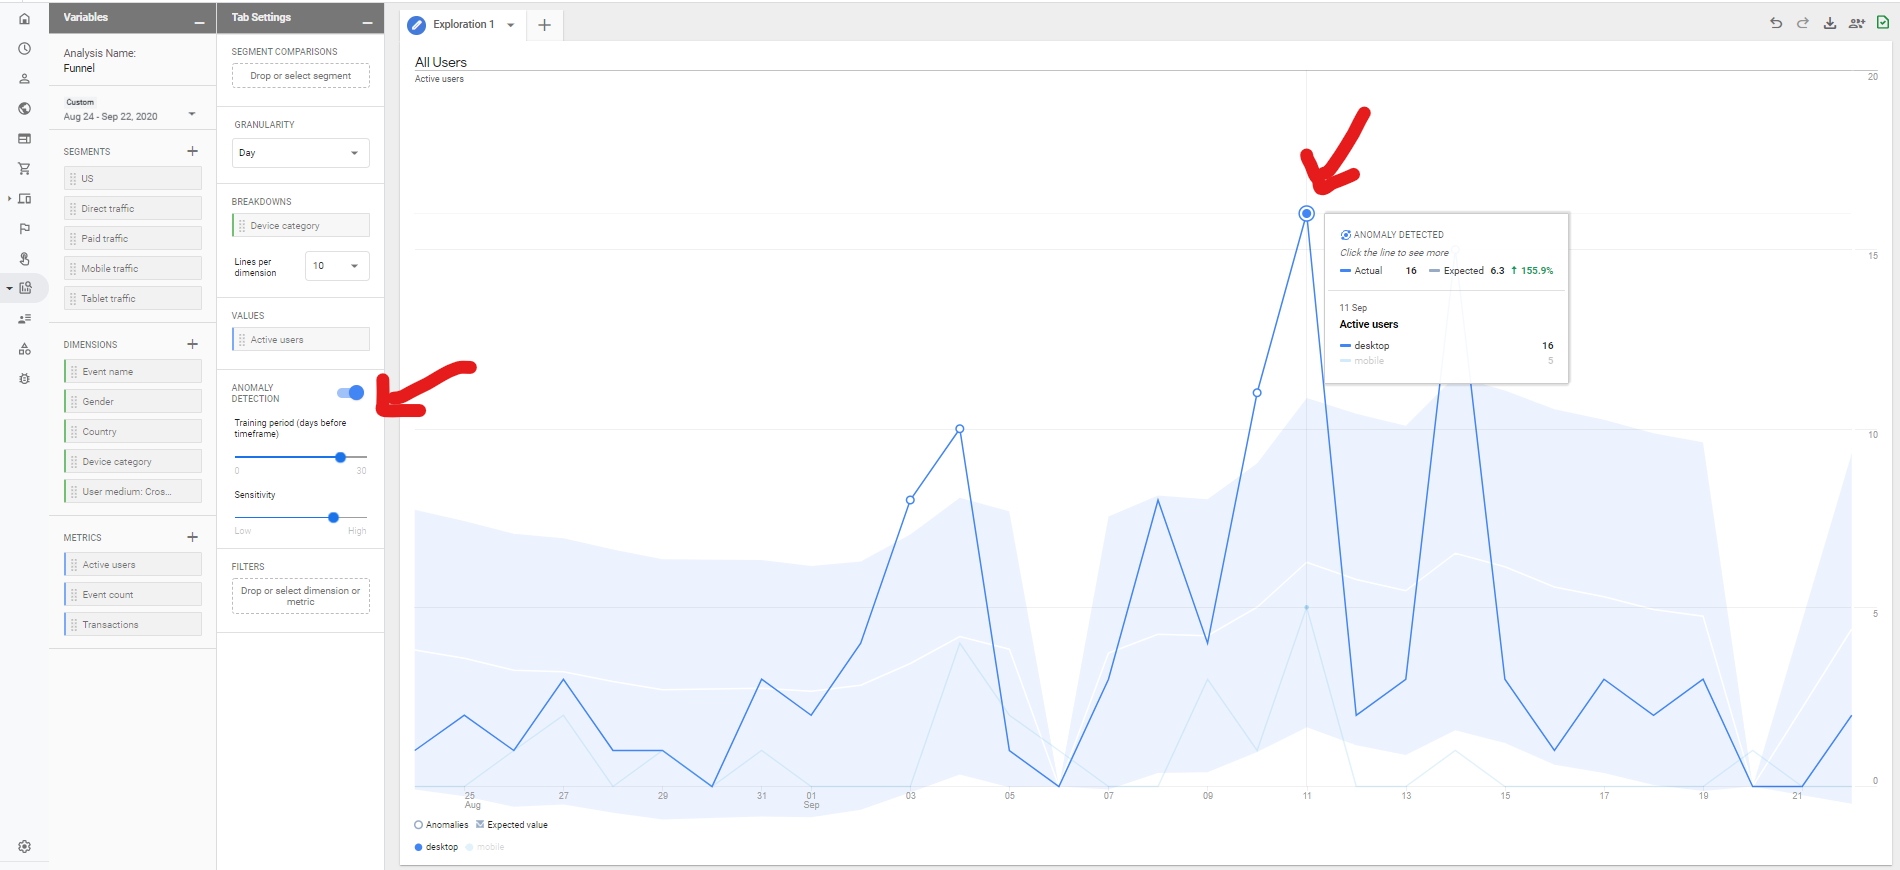 Google Analytics 4 Exploration Report Anomaly Detection